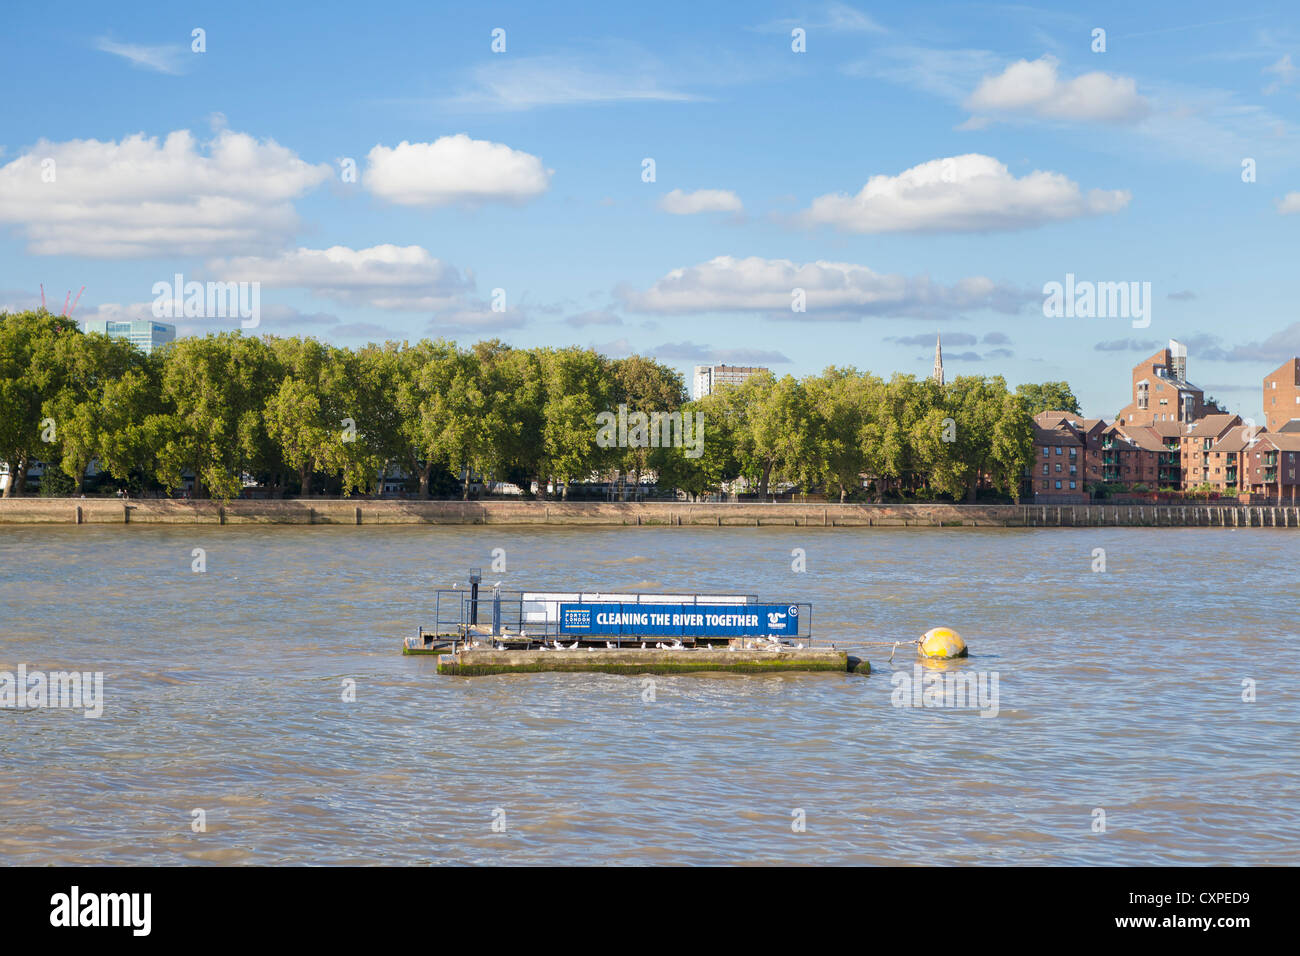 A litter trap on the river Thames, London, UK - Stock Image